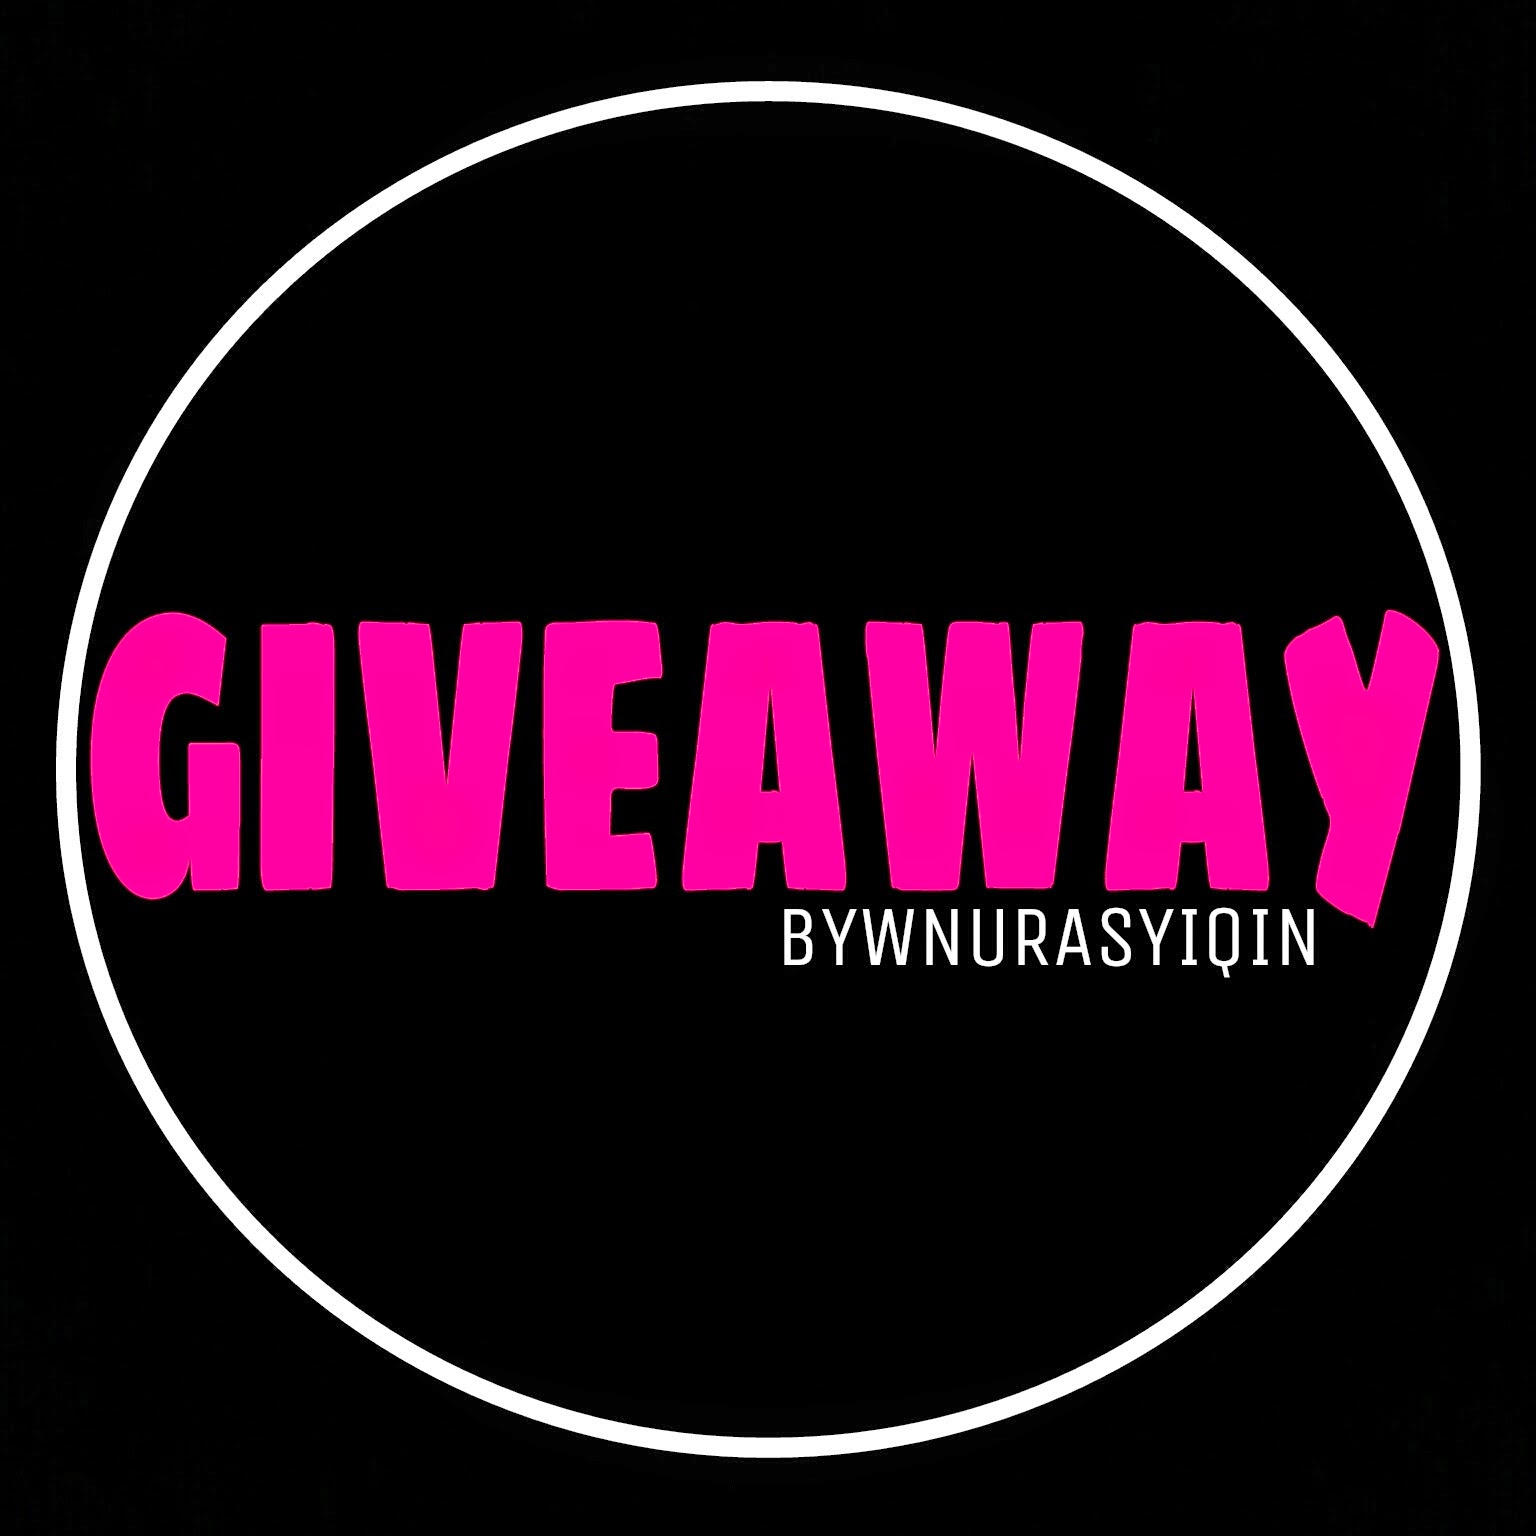 http://wnurasyiqin.blogspot.com/2014/09/first-giveaway-by-wnurasyiqin.html